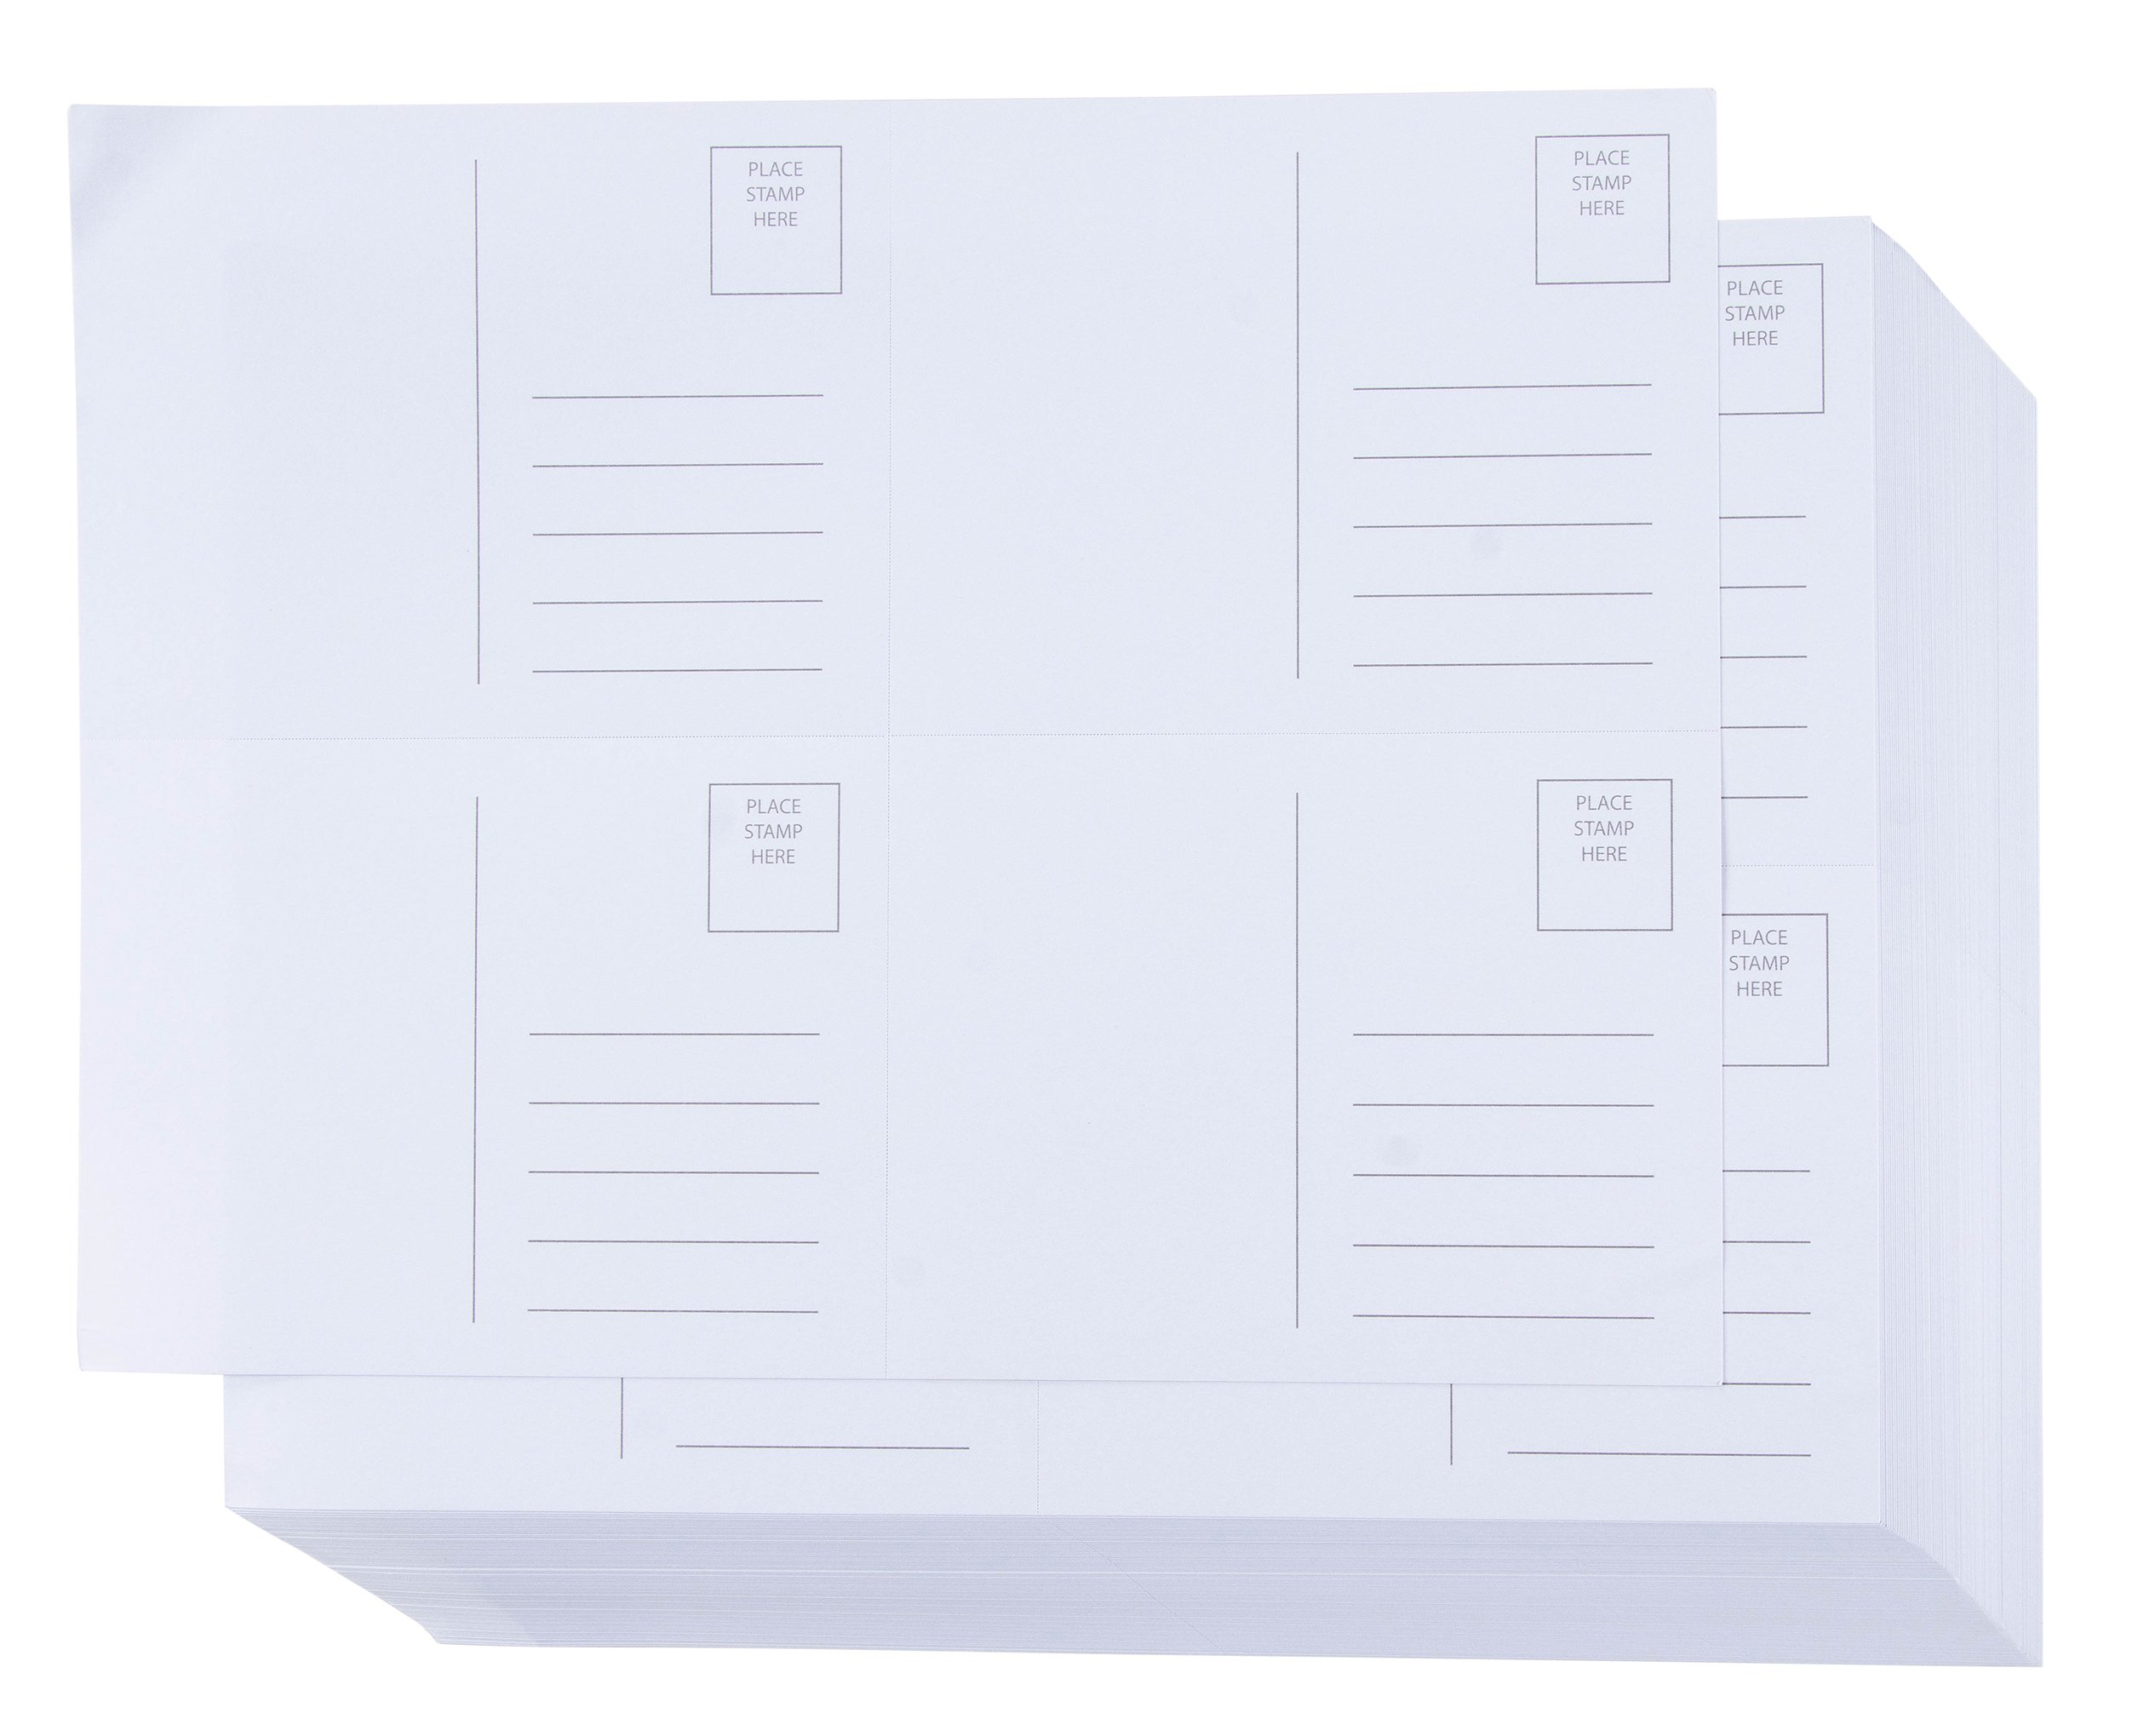 Blank Postcards - 100-Sheet Kraft Paper Postcards, Self Mailer Mailing Side Postcards, 4 Per Page 400 Cards in Total, White, Perforated, 4 x 6 Inches